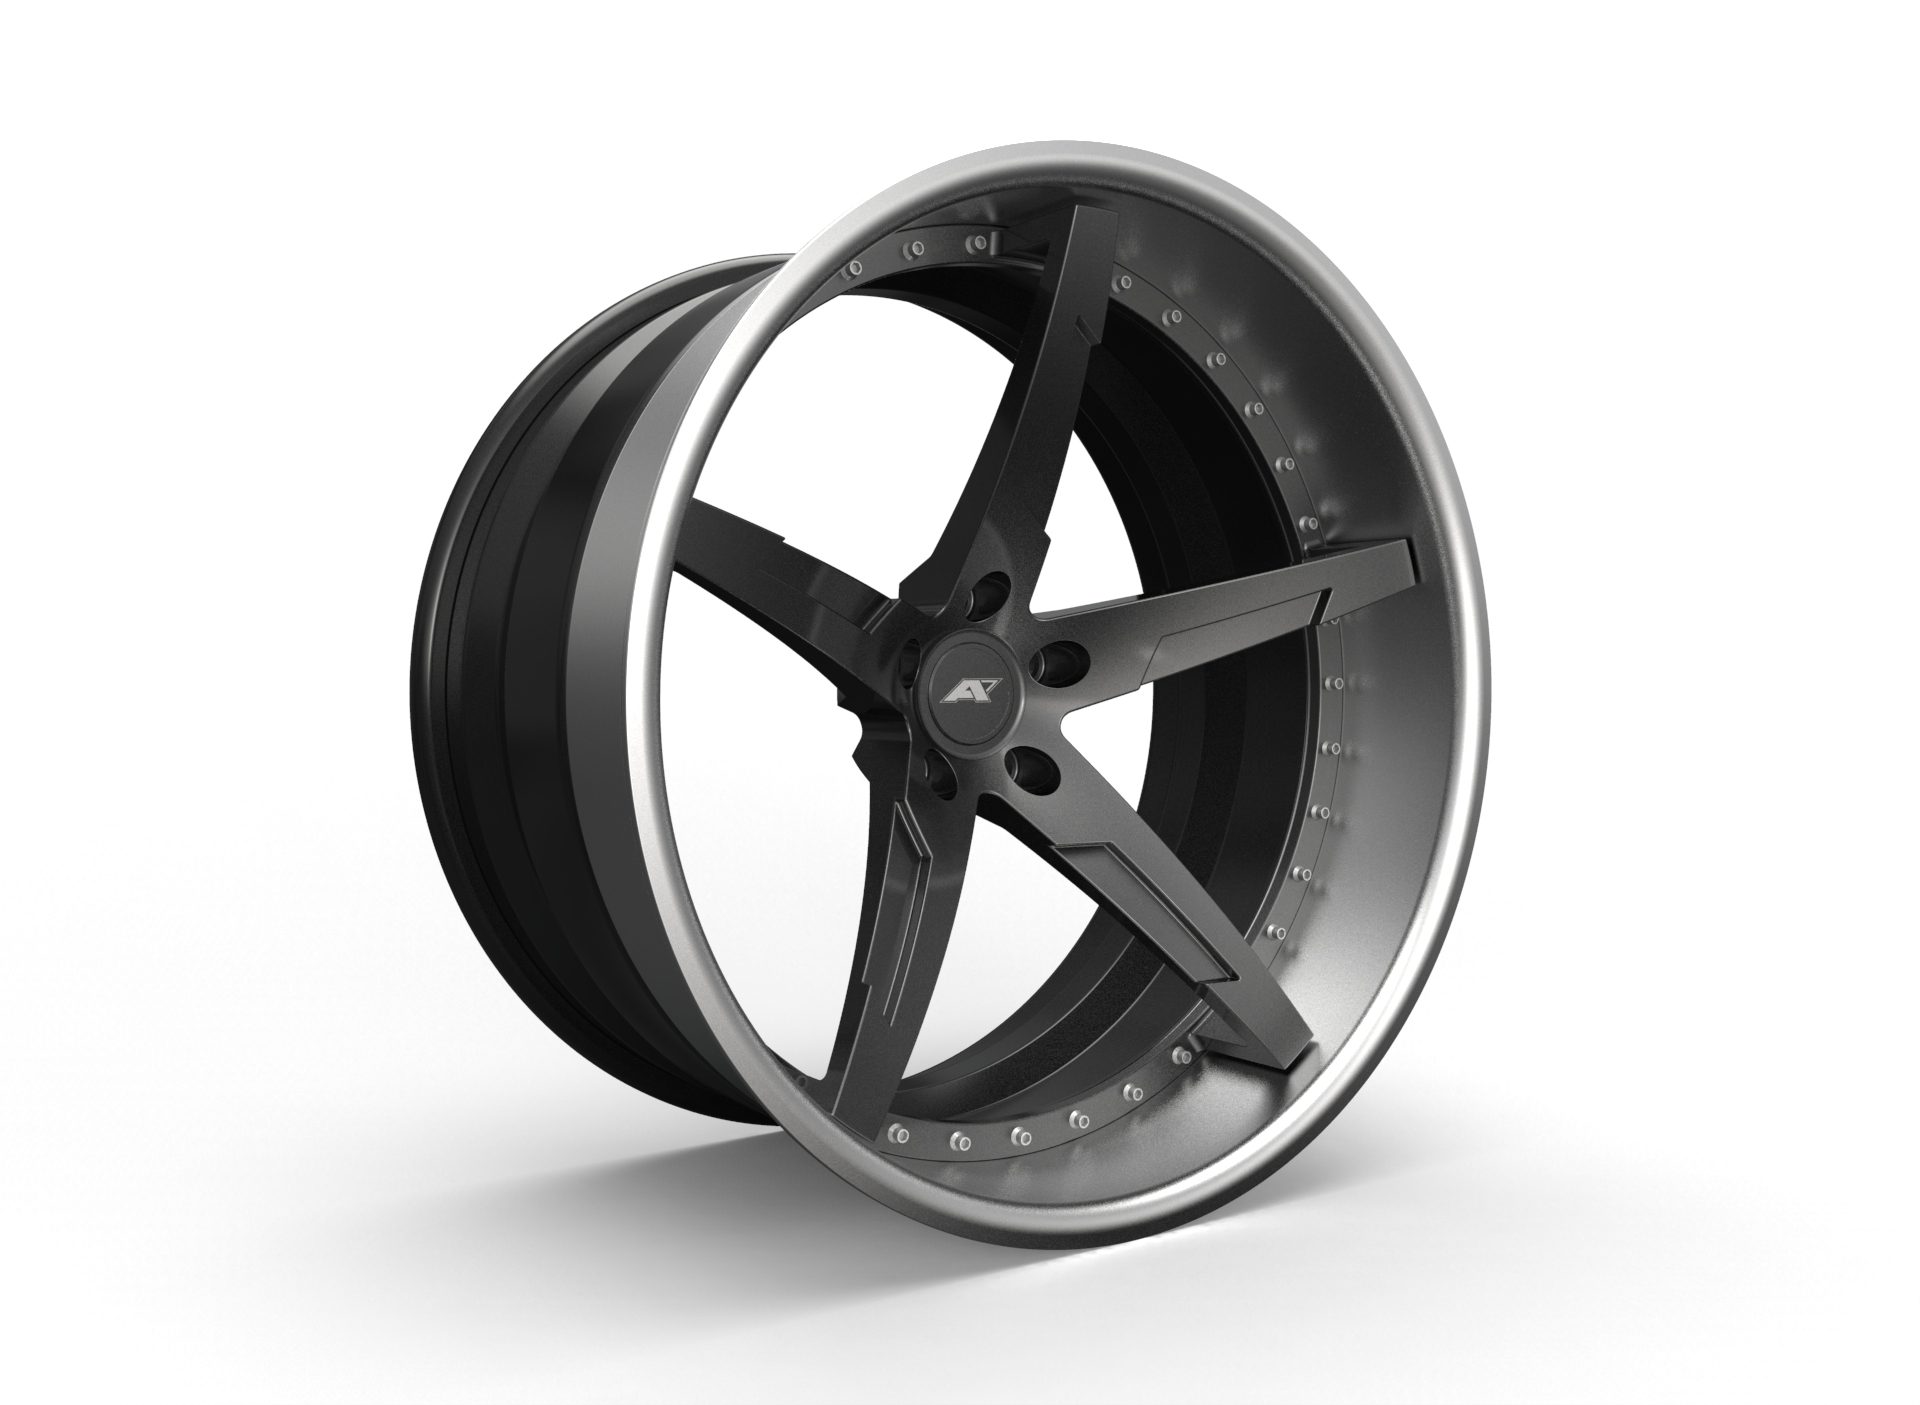 alphamale_wheels_4.82.jpg